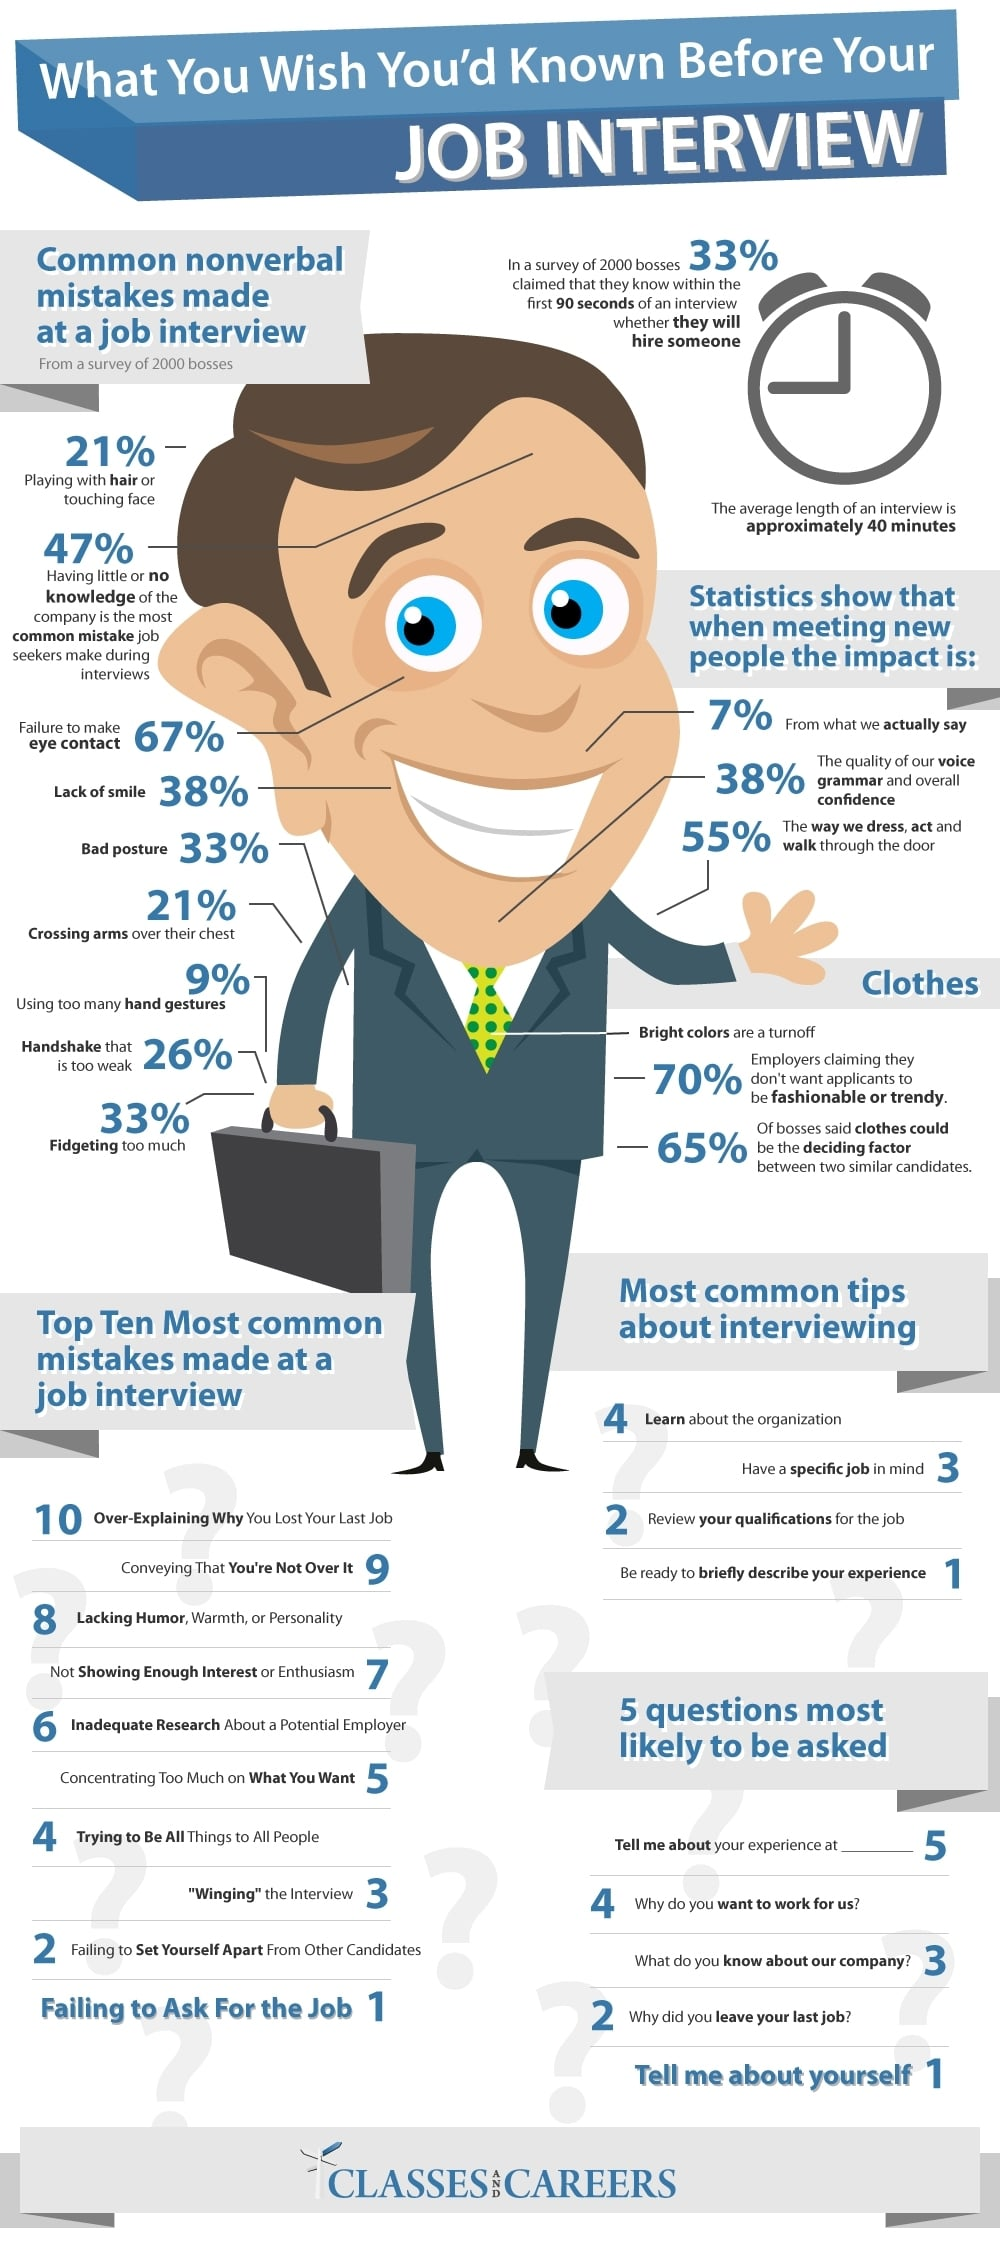 Things To Know Before Your Job Interview [Infographic]